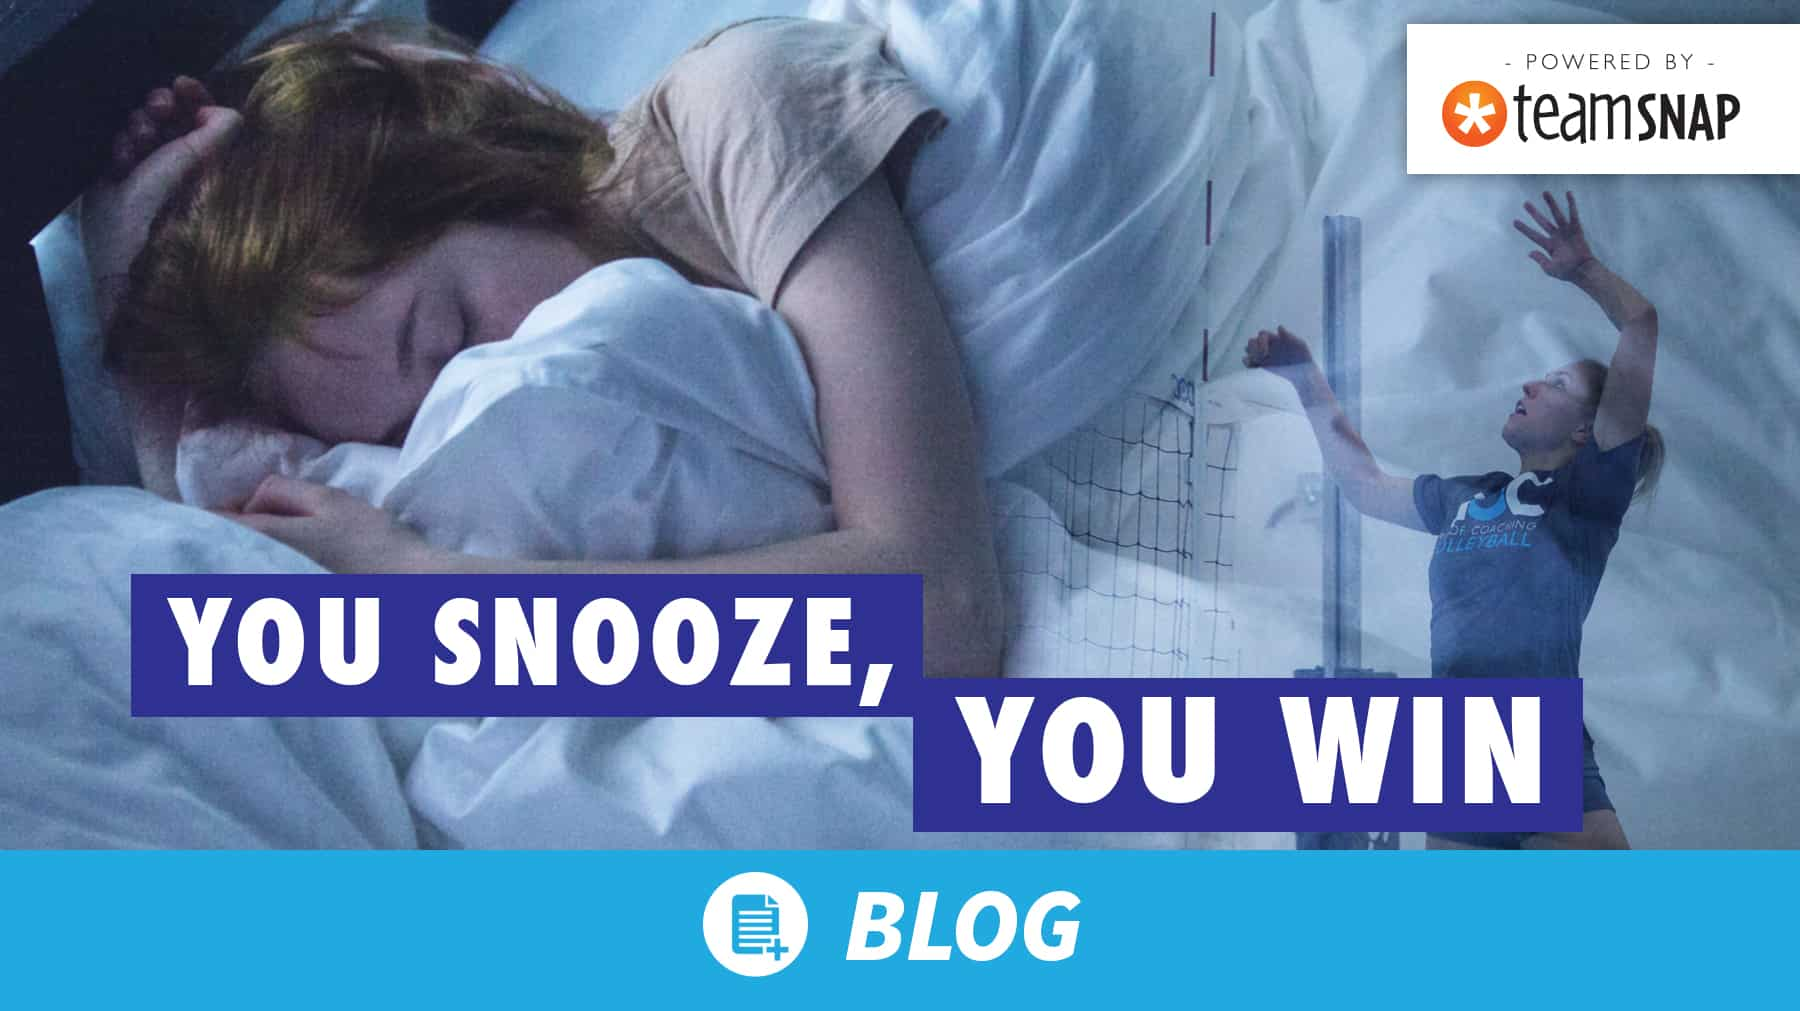 You snooze, you win